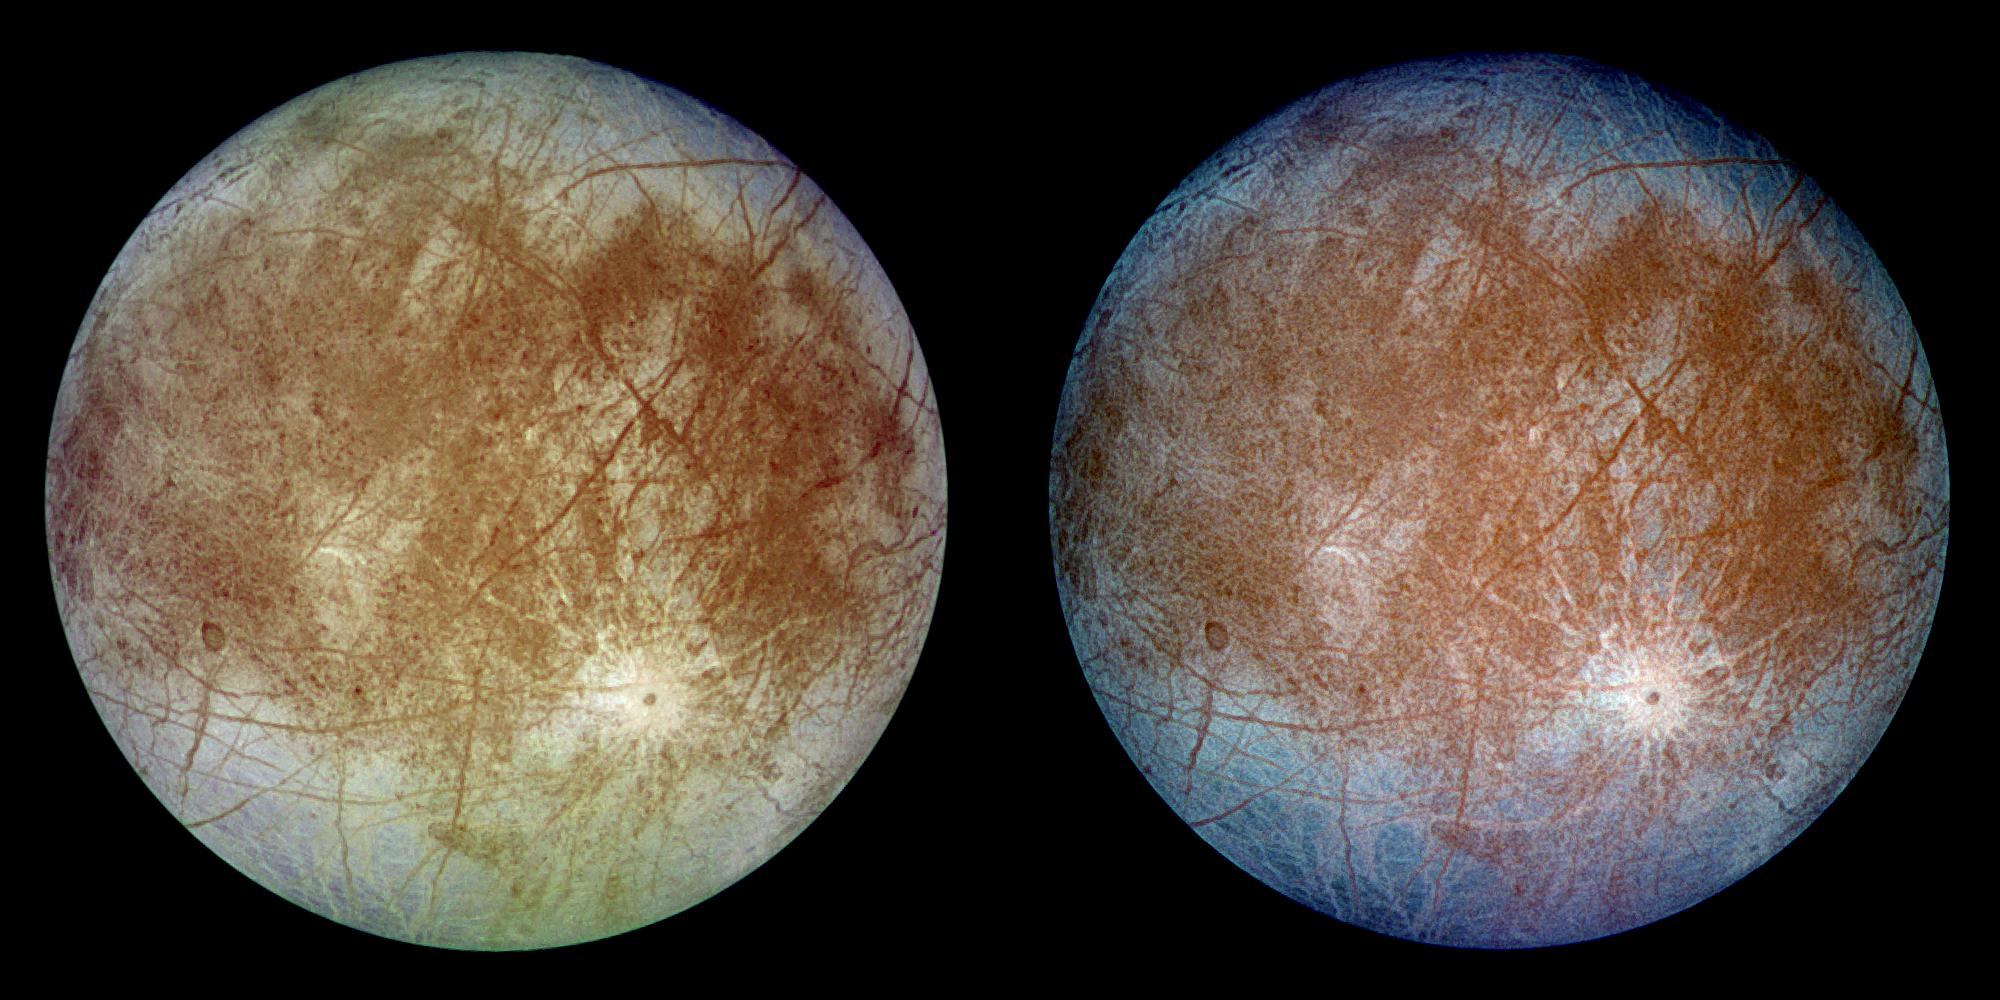 Astronomers have discovered that water vapor on Europa is persistent using Hubble data. Credit: NASA/JPL-Caltech/DLR